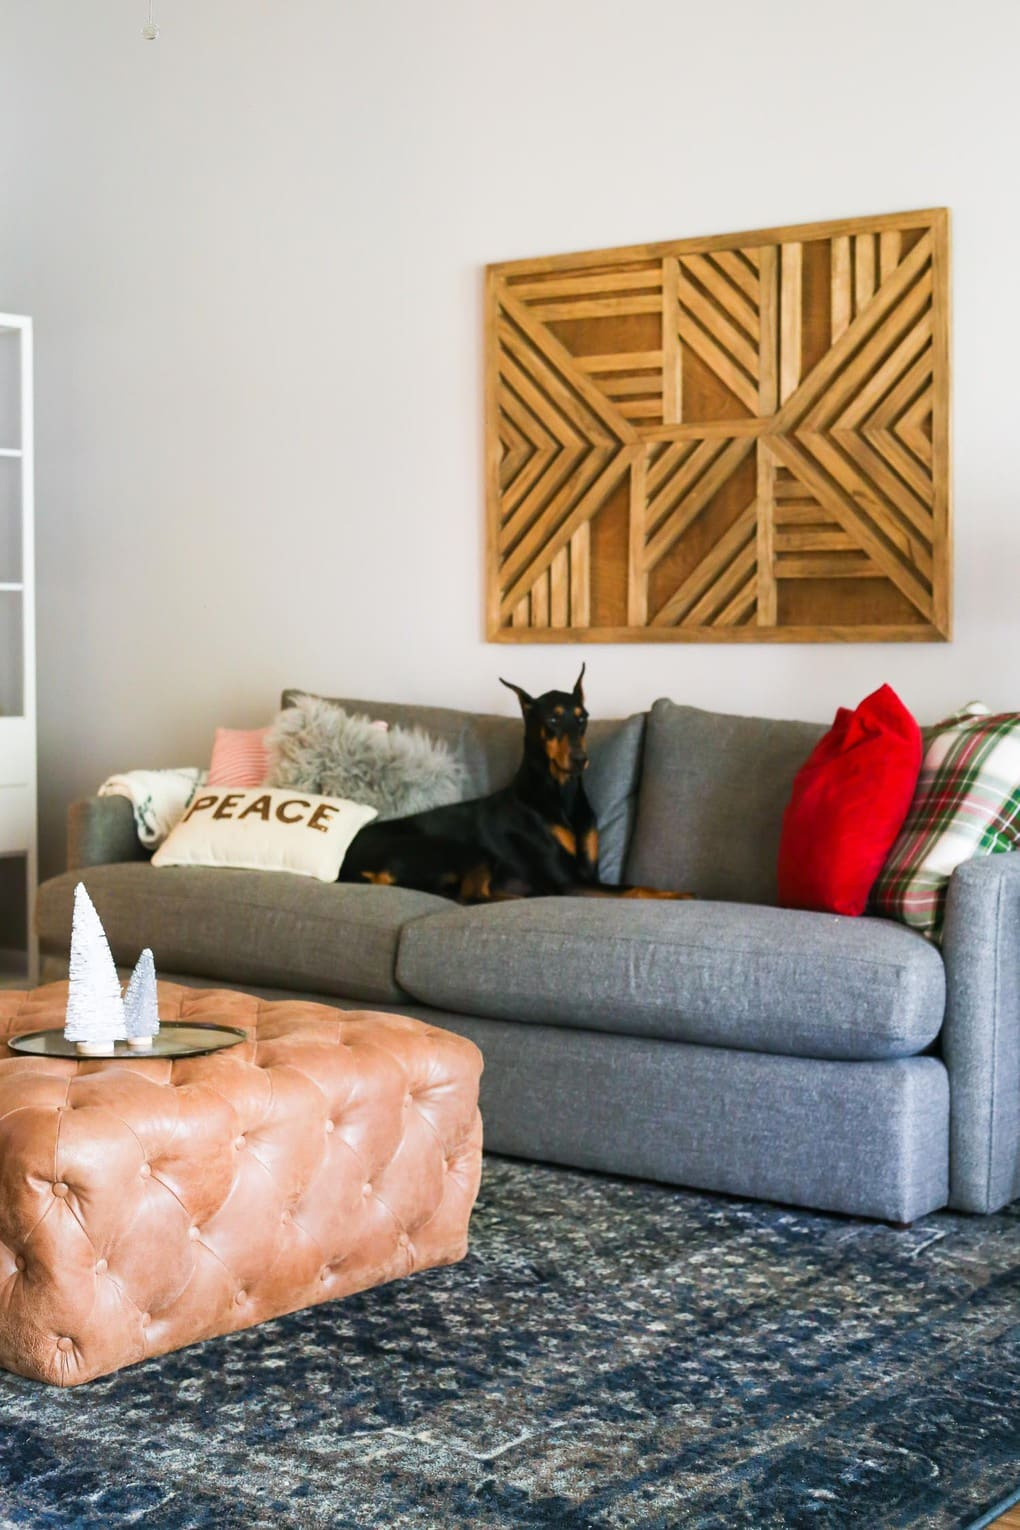 Brand-new Our Big Comfy Couch: A Crate & Barrel Lounge II Sofa Review WA35